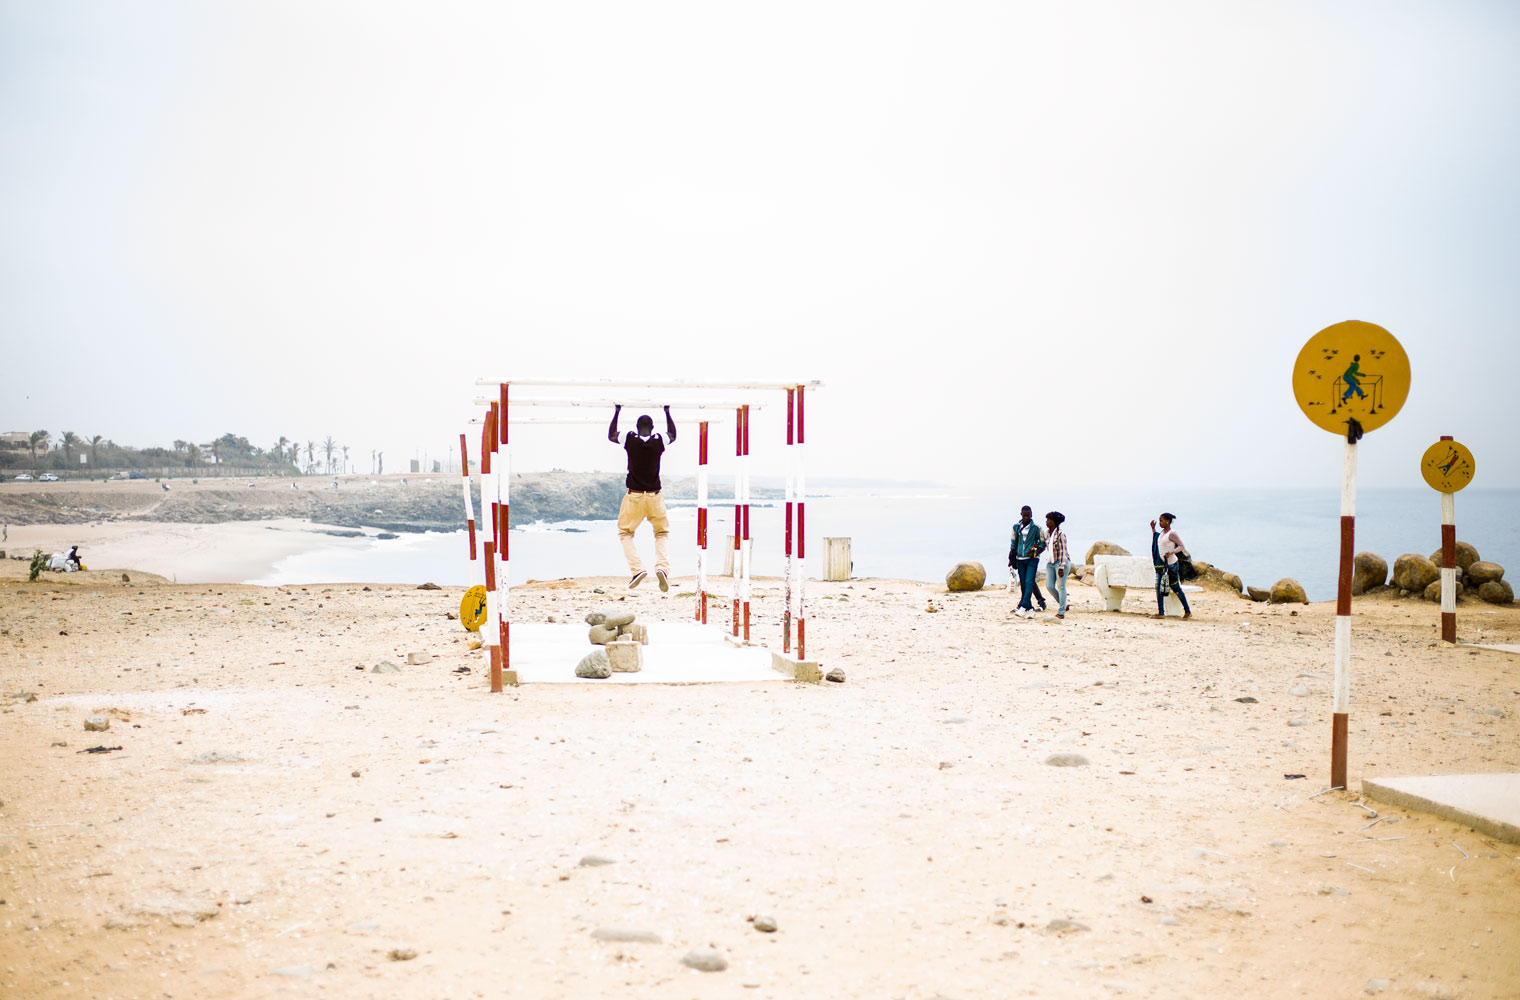 Muscle Beach, Dakar, Senegal